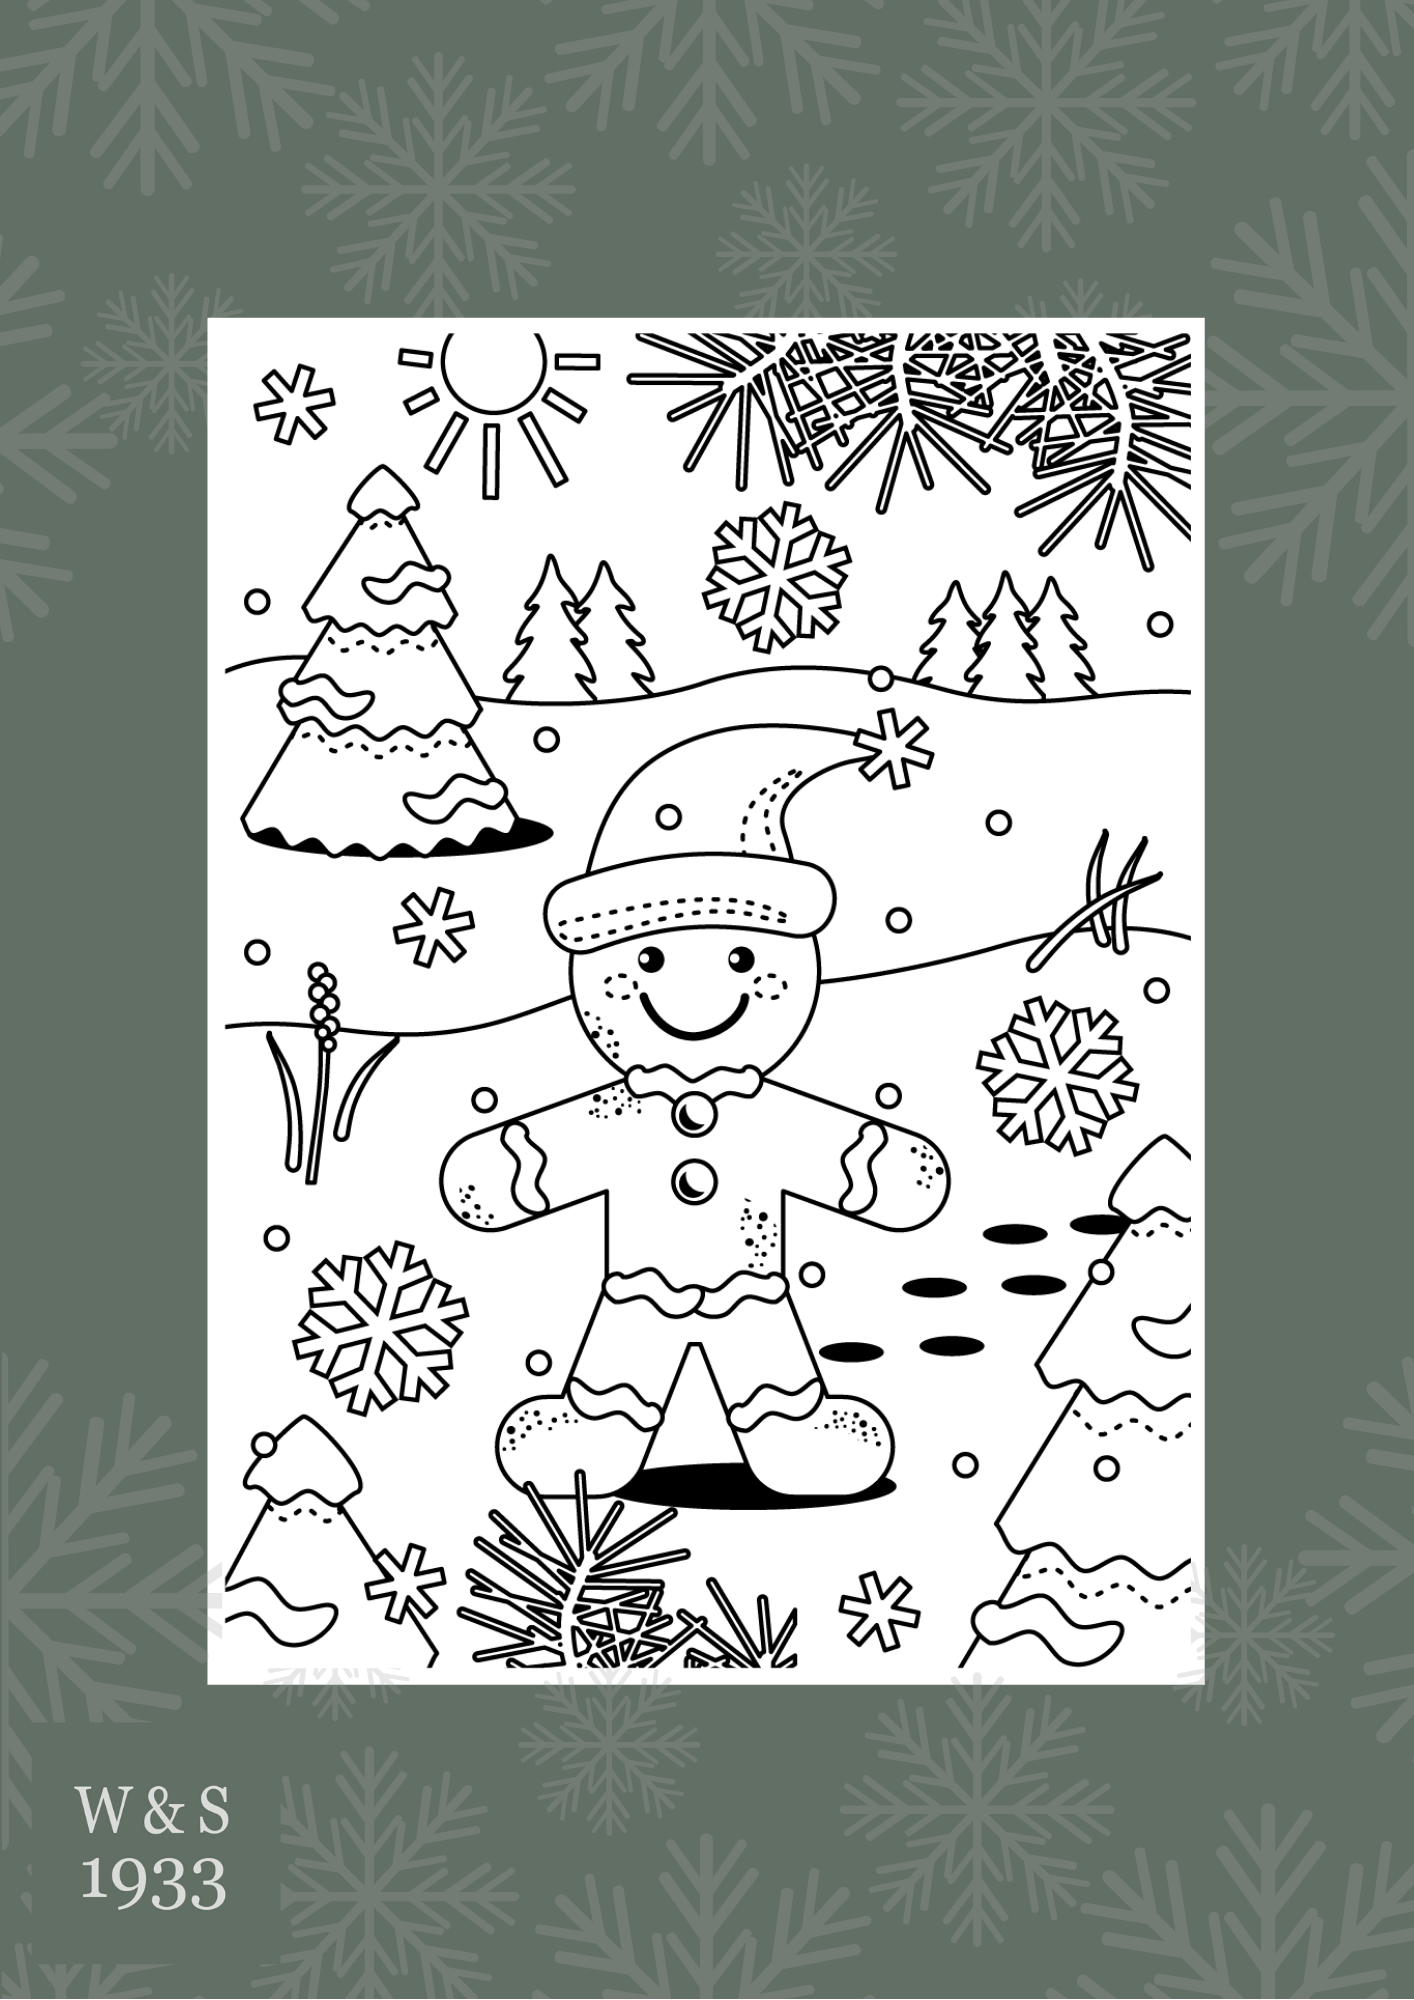 Wills & Smerdon Christmas colouring page 3